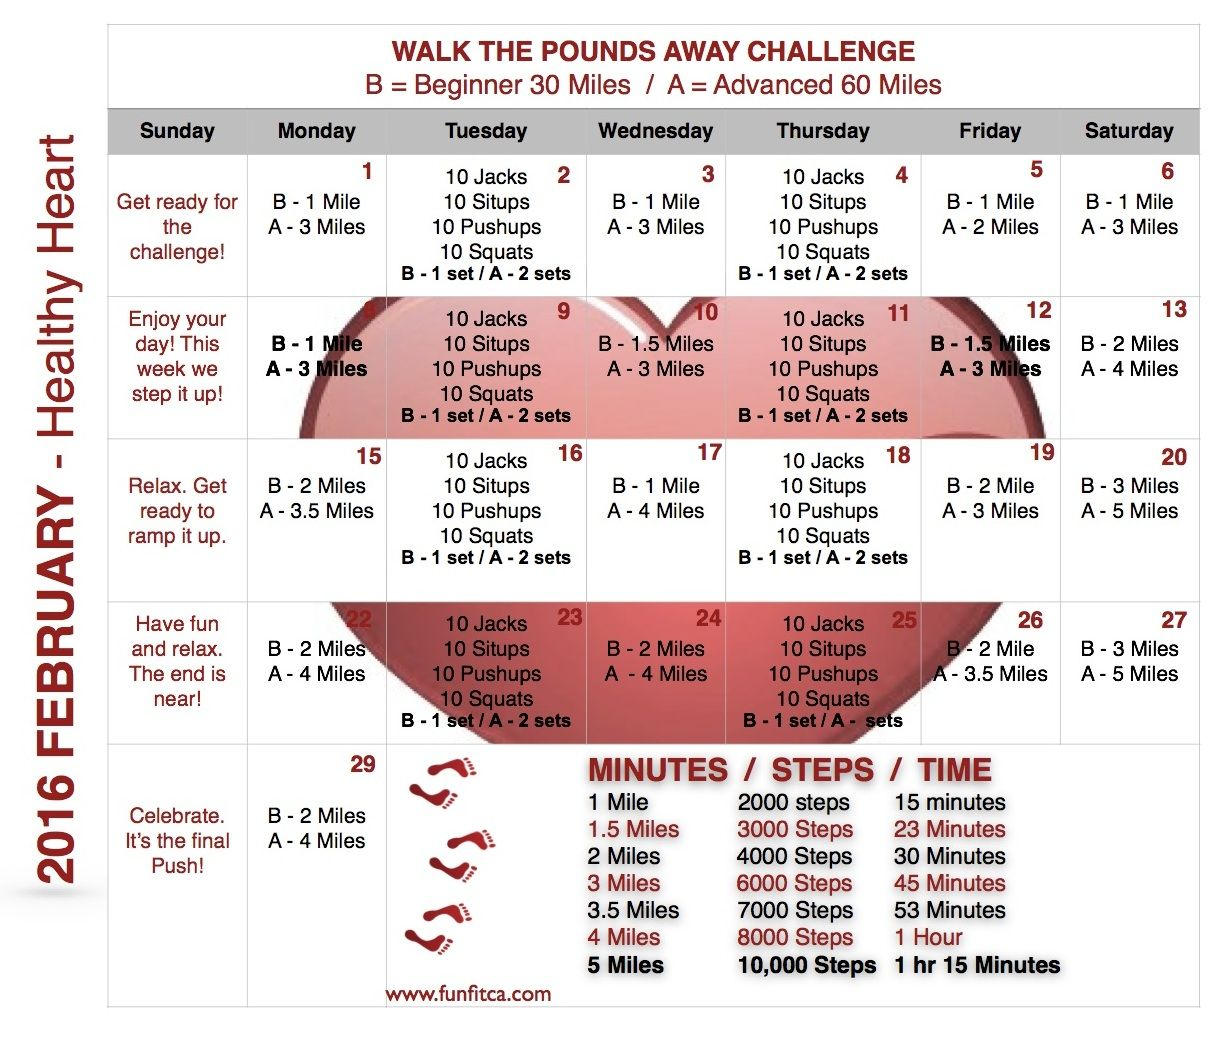 Walk The Pounds A Way With The Funfit Workout Calendar